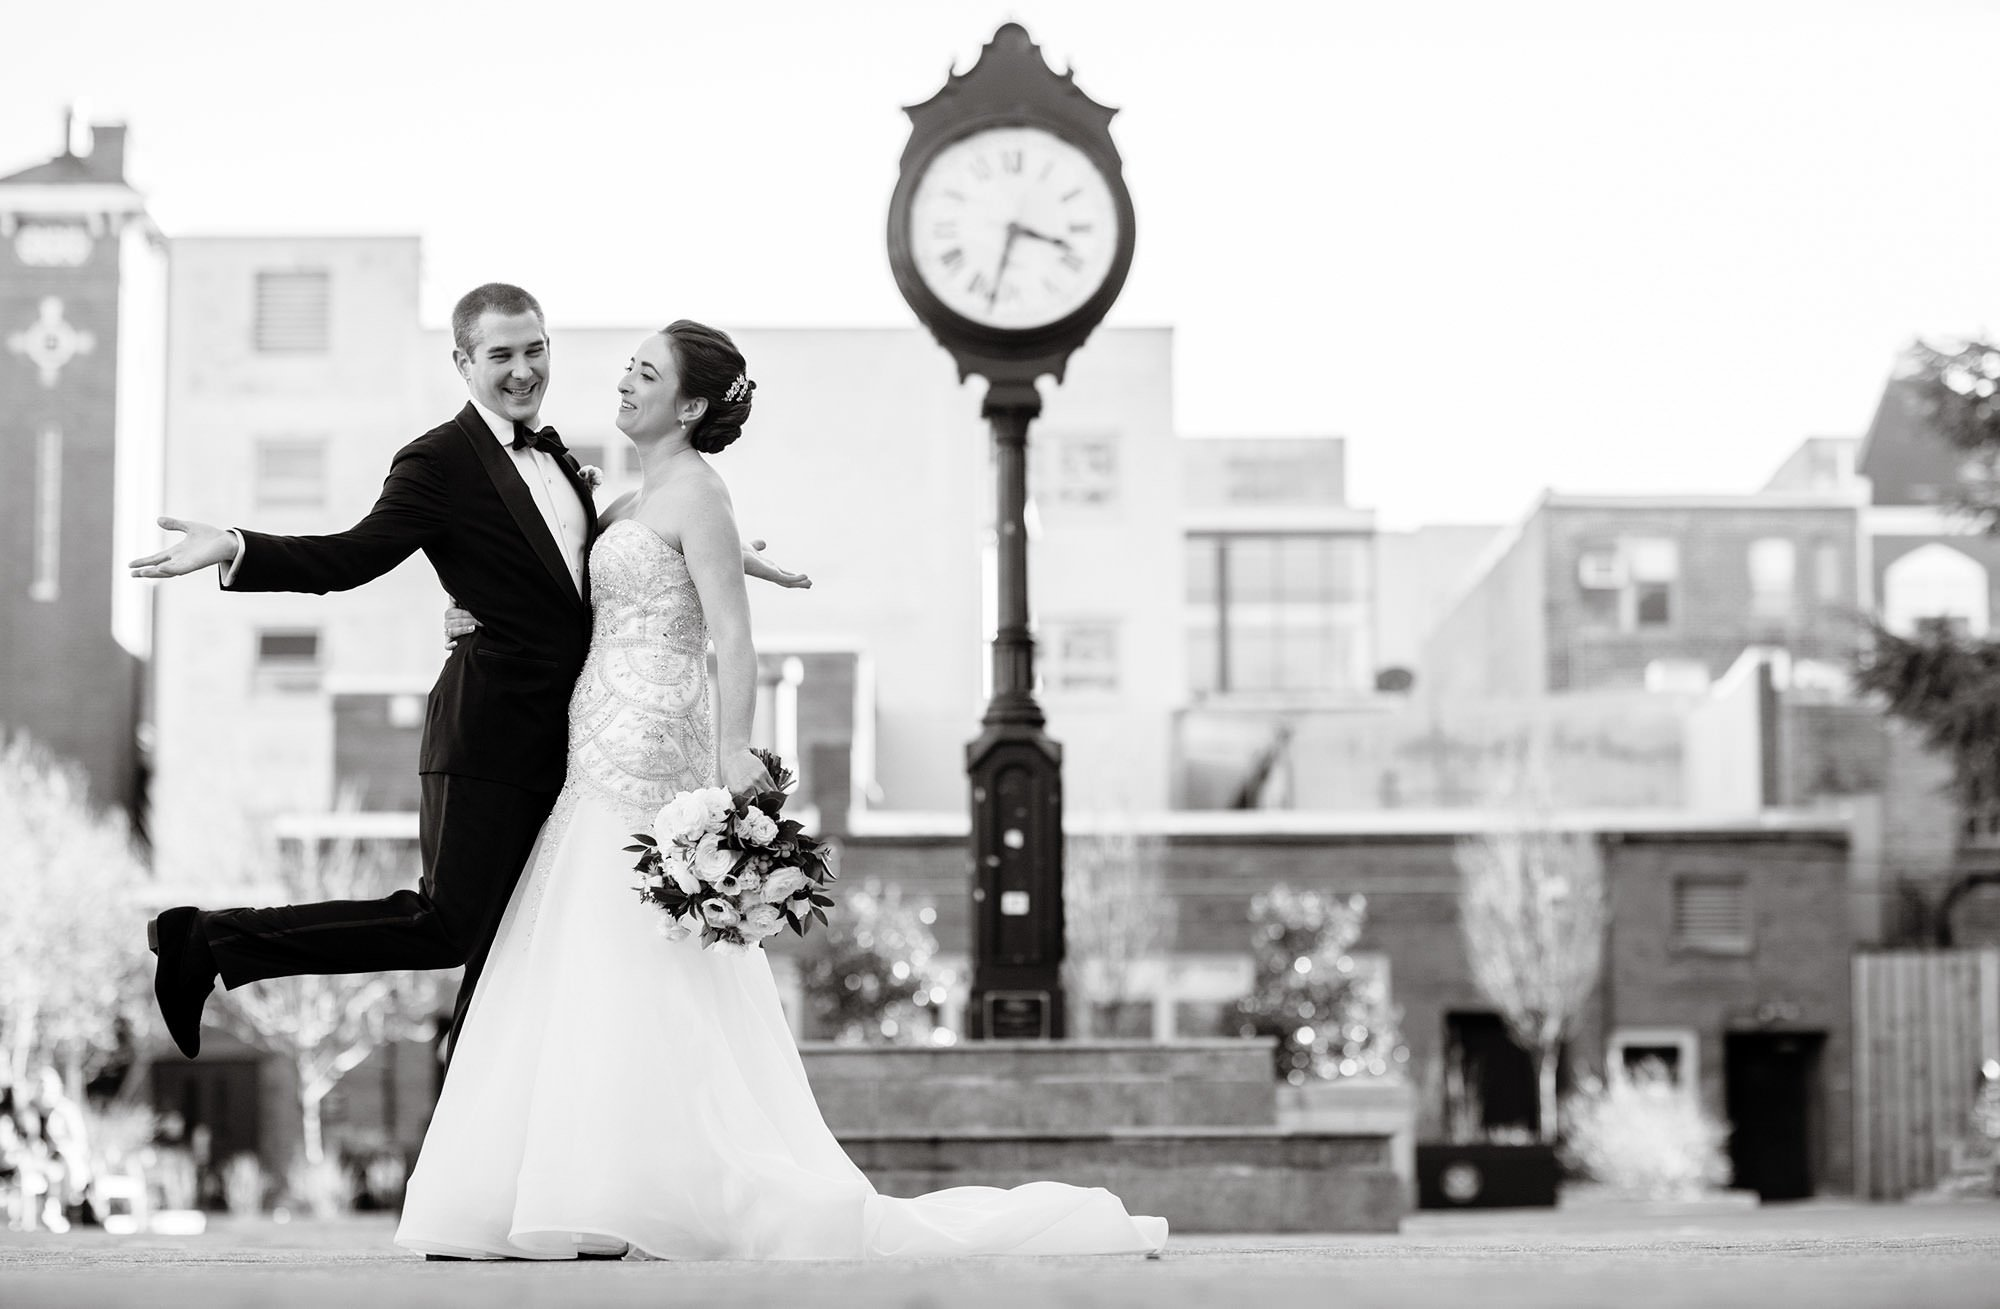 The Bride and Groom enjoy their First Look at Kogan Plaza before their NMWA wedding.